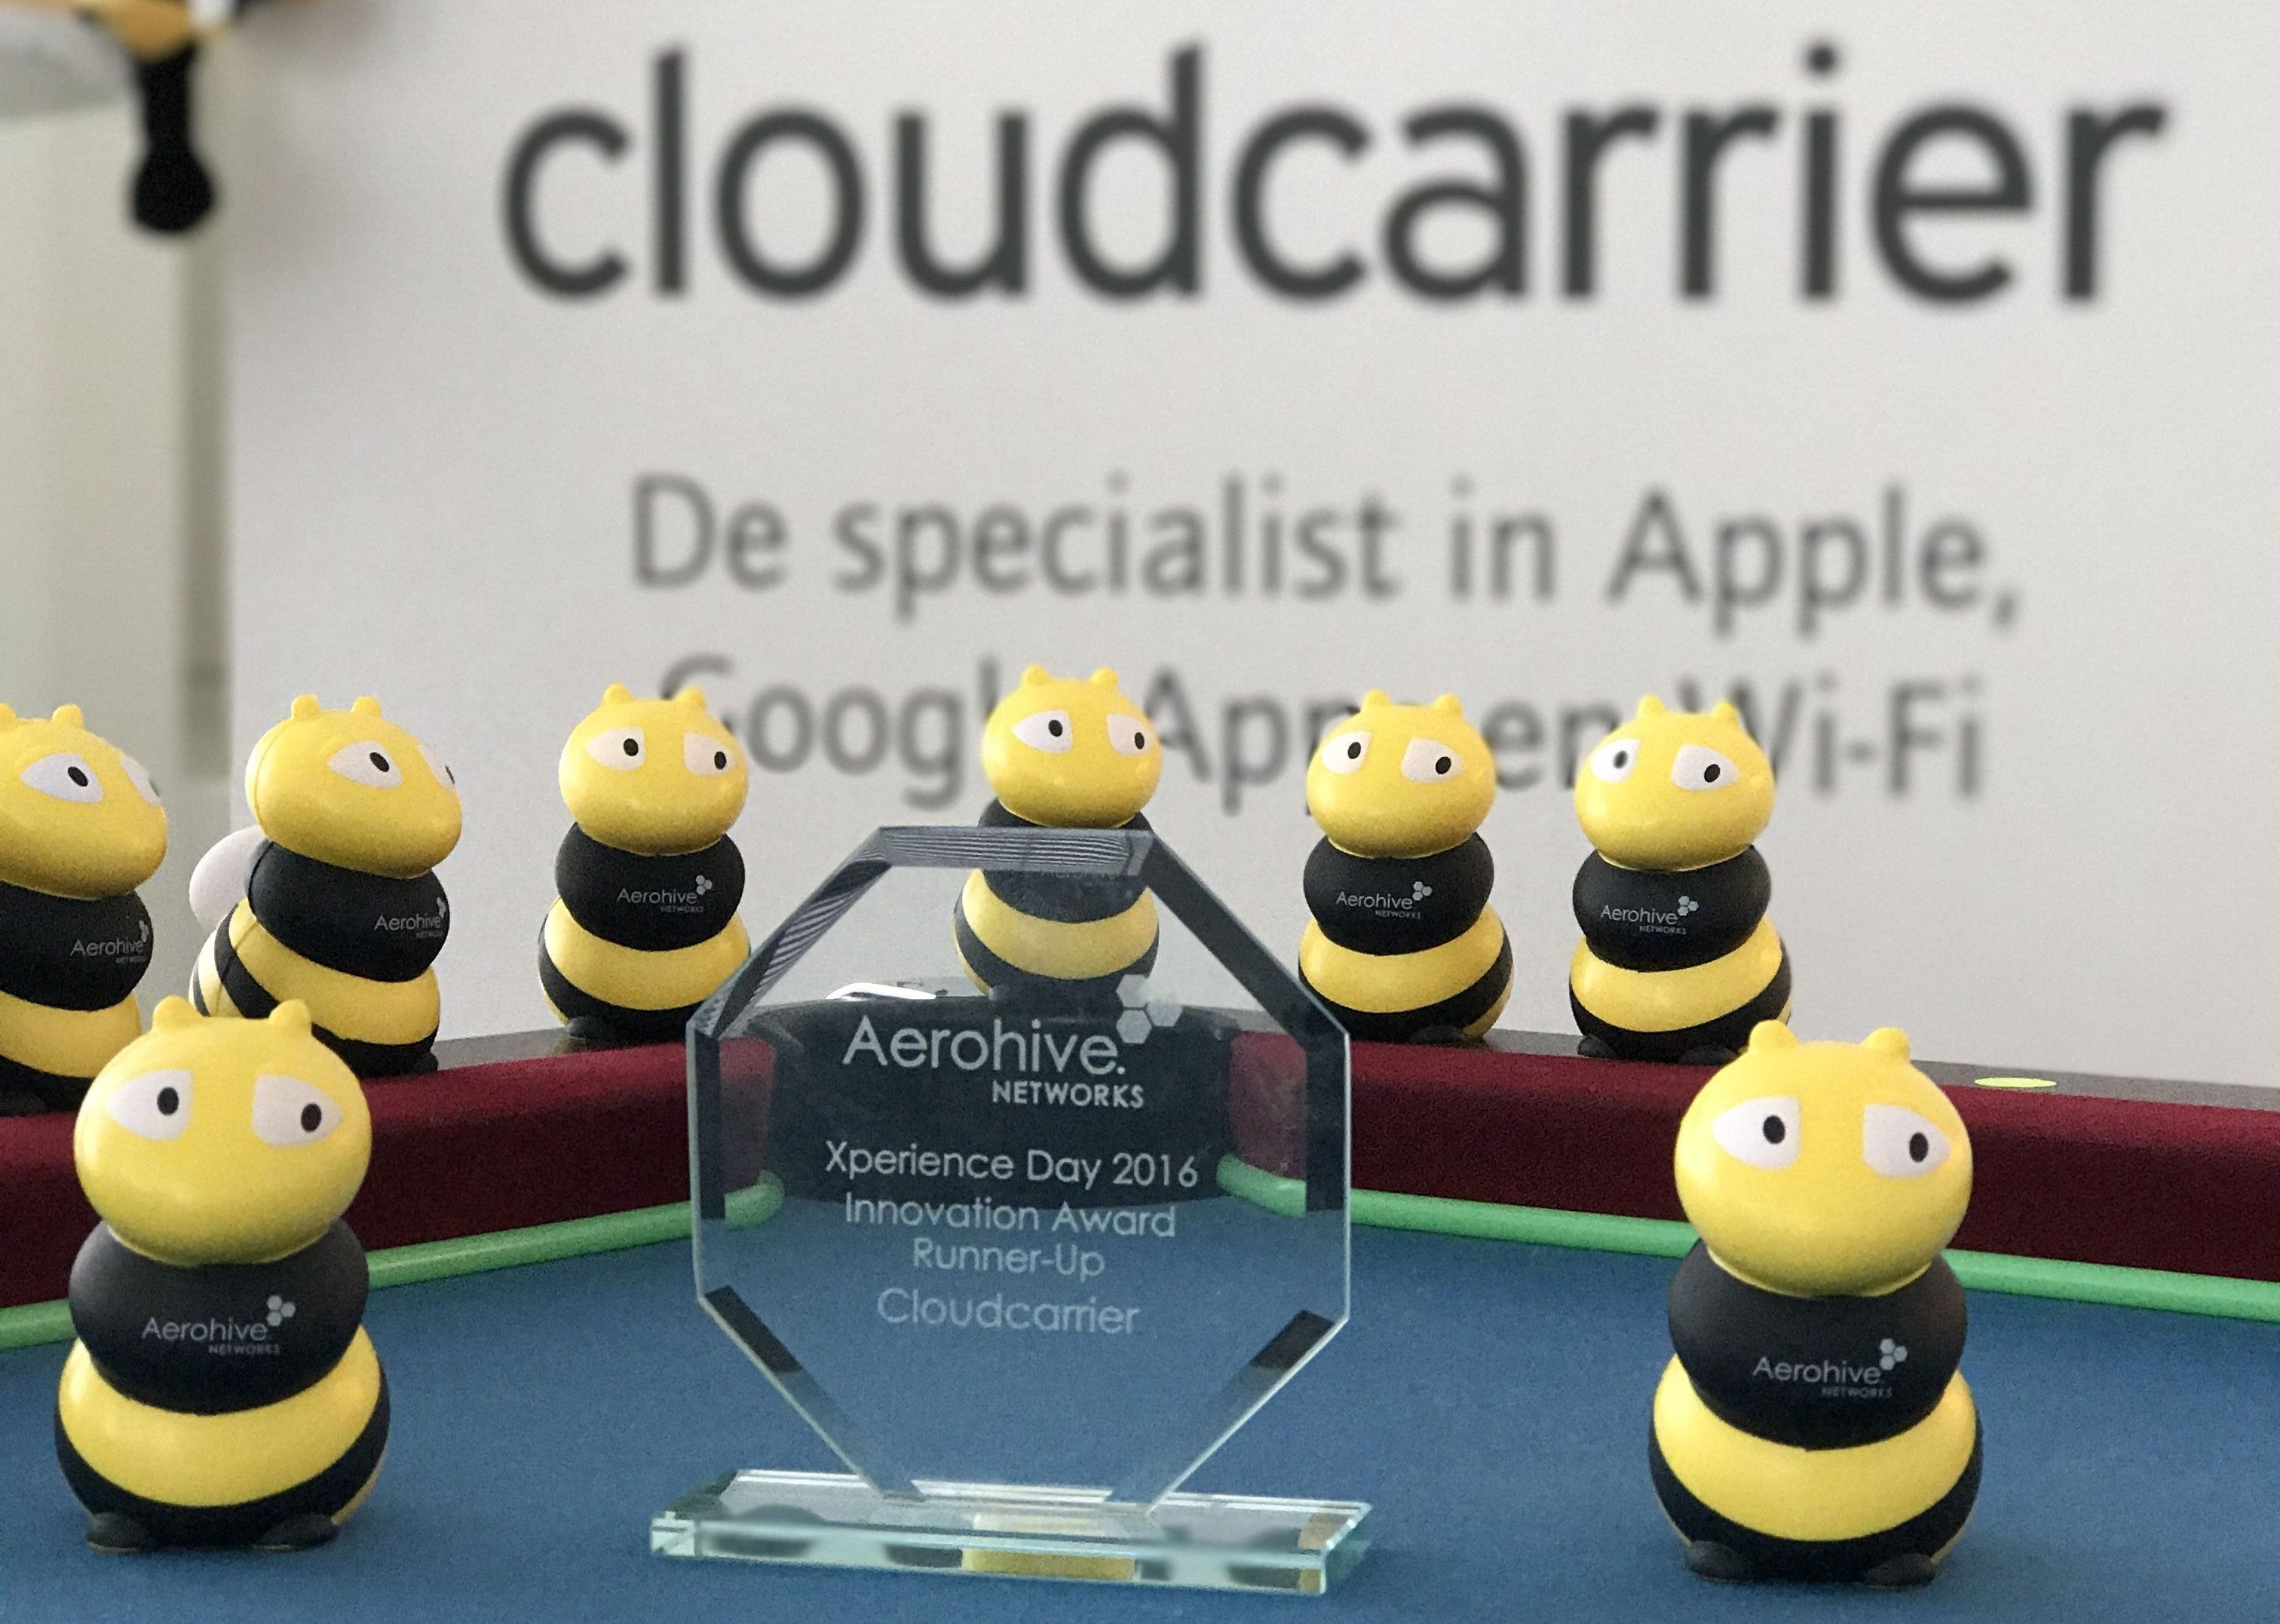 Cloudcarrier Aerohive (nu Extreme Networks) Innovation Award Runner-Up